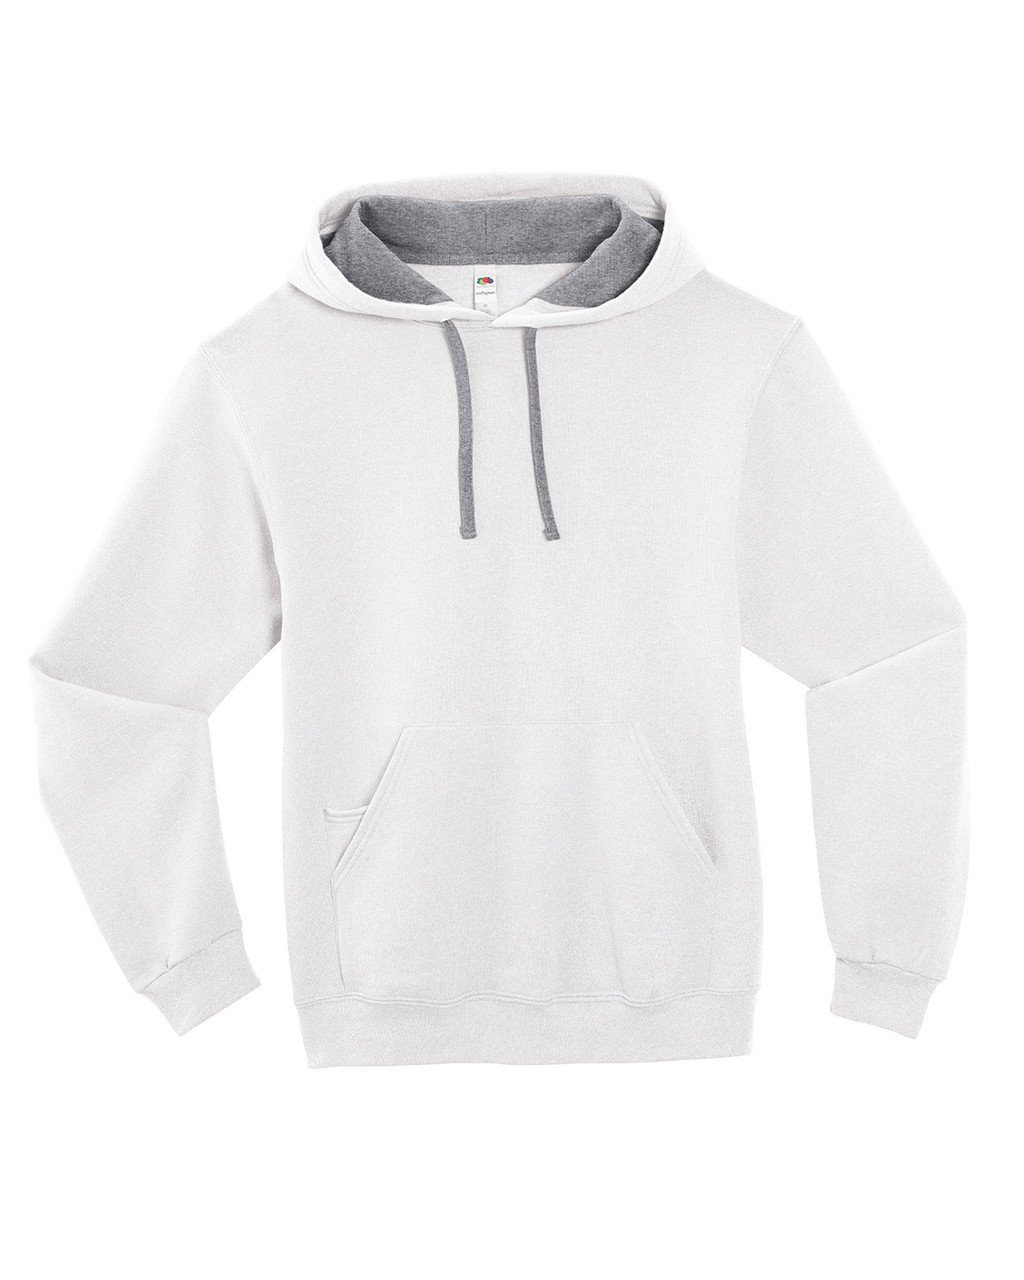 White - SF76R Fruit of the Loom Softspun Hooded Sweatshirt | Blankclothing.ca